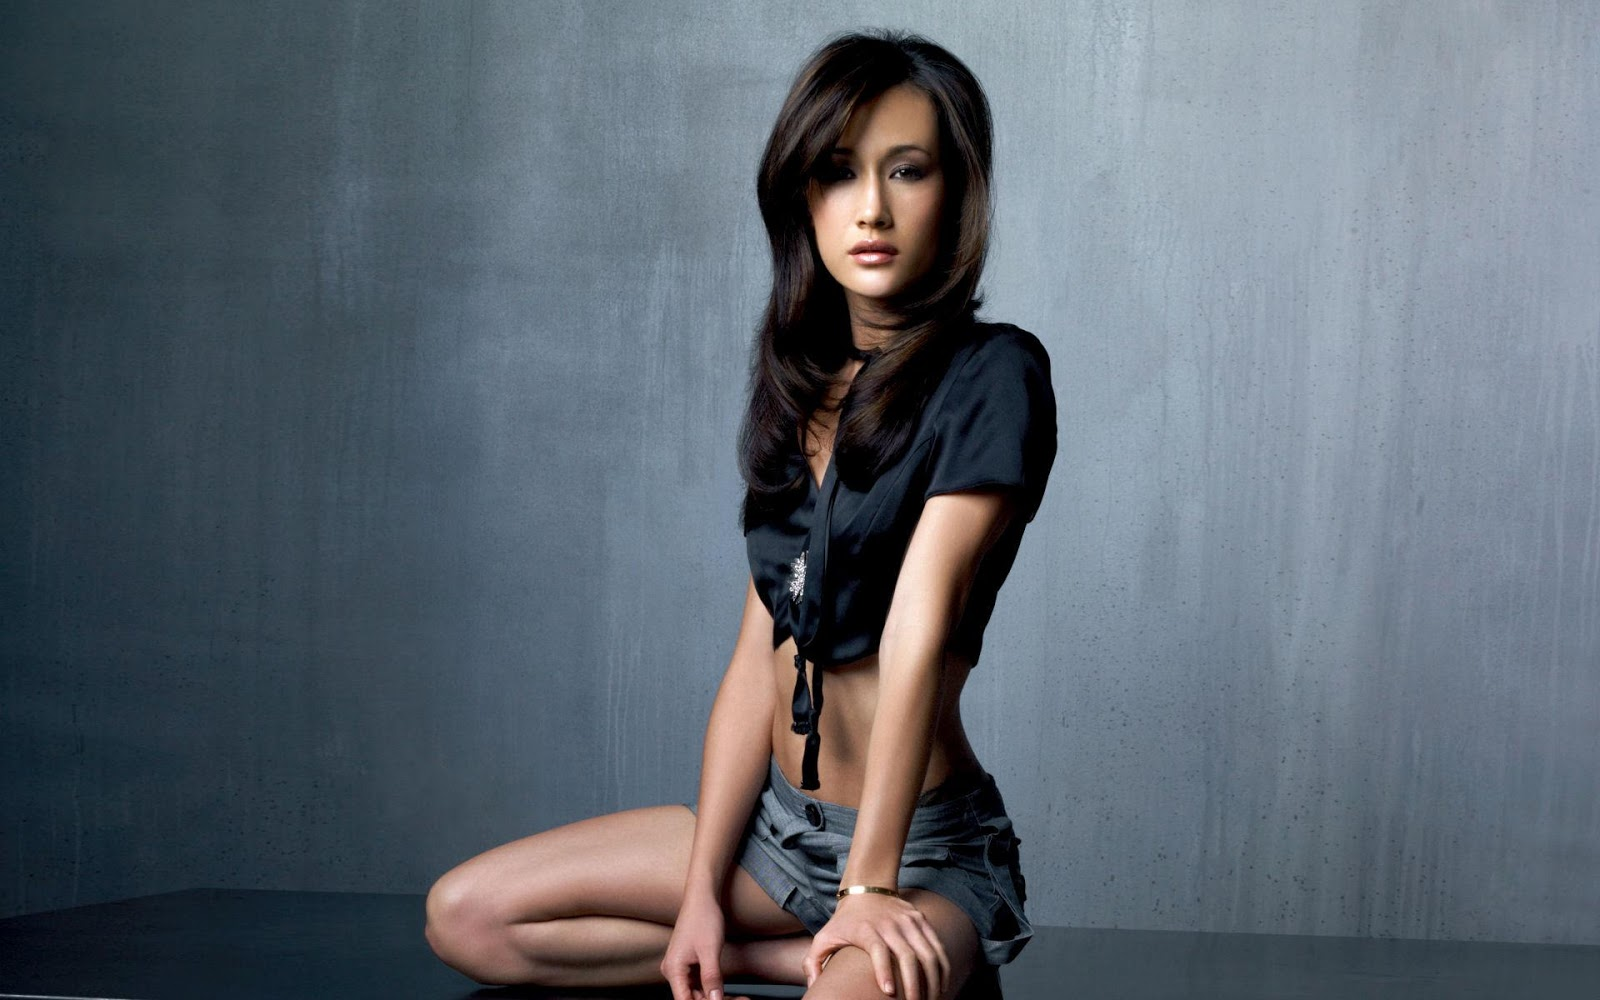 Maggie Q wallpapers for your PC